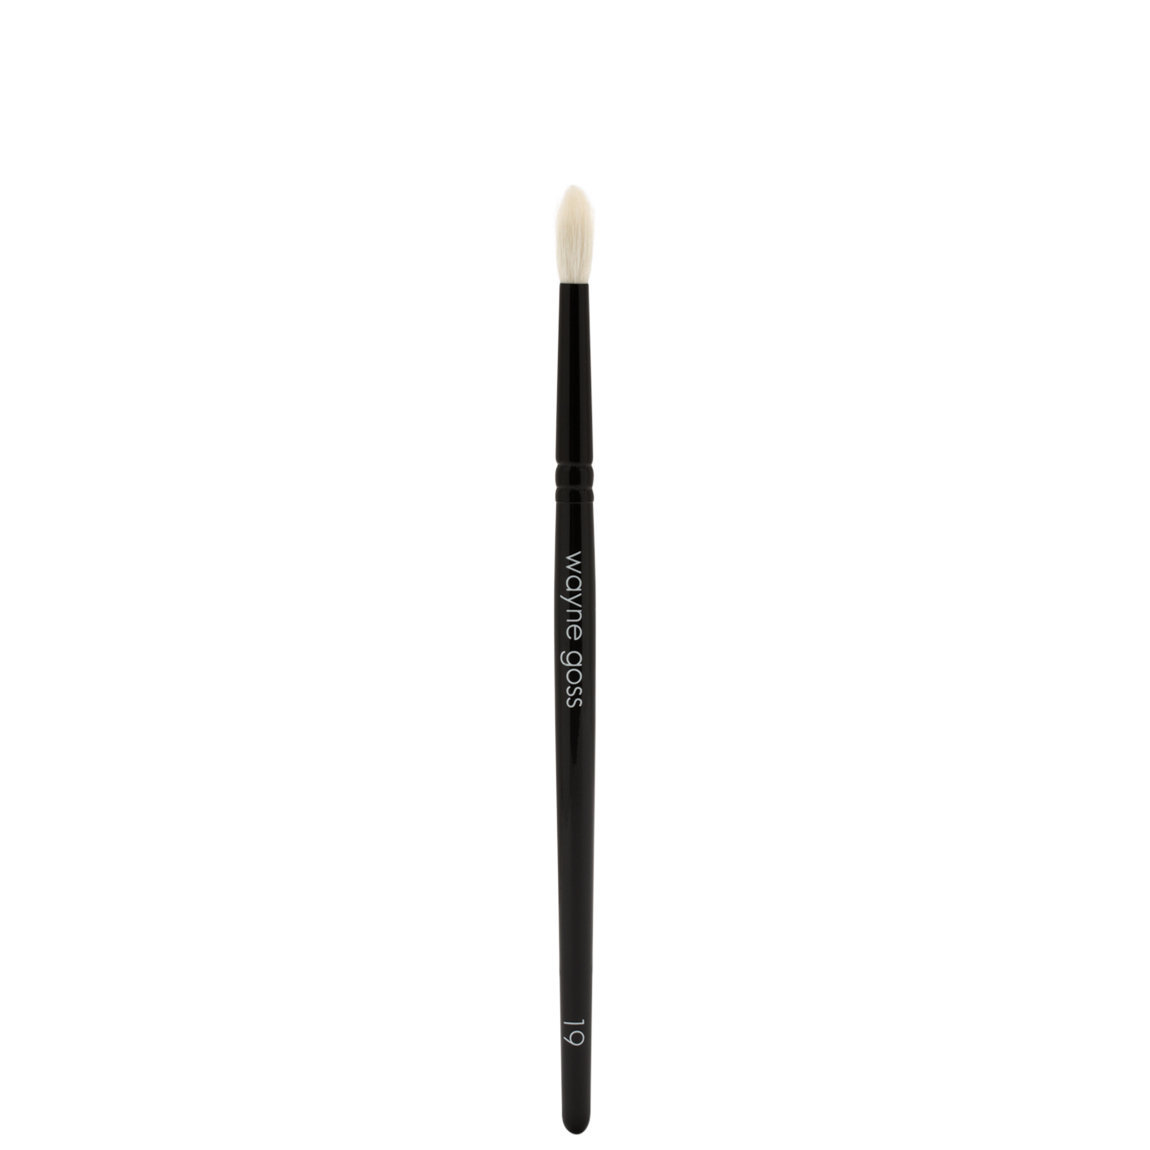 Wayne Goss Brush 19 Eye Shadow Precision Blending Brush alternative view 1.